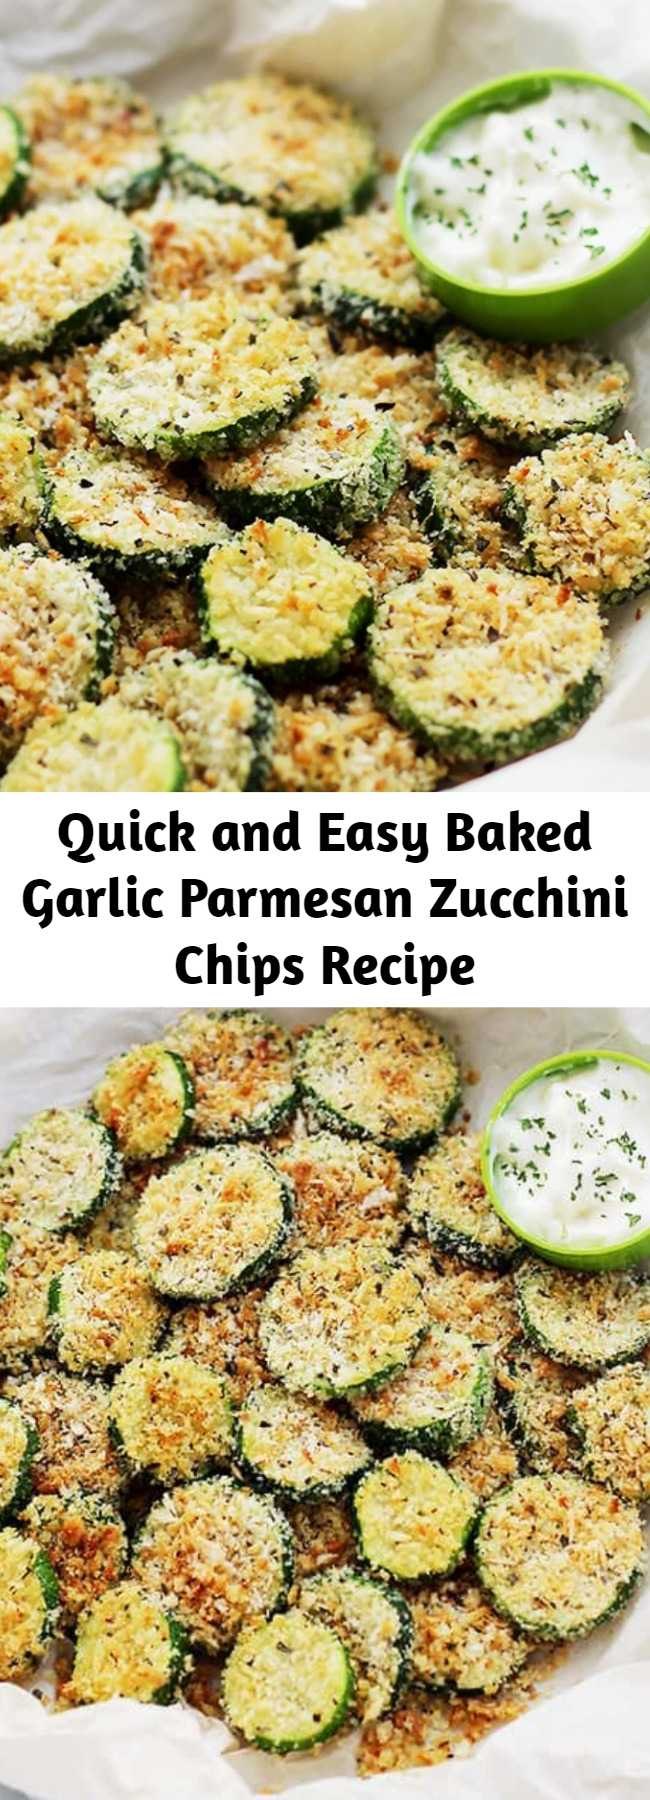 Quick and Easy Baked Garlic Parmesan Zucchini Chips Recipe - Crispy and flavorful baked zucchini chips covered in seasoned panko bread crumbs with garlic and Parmesan. #zucchini #chips #healthyrecipes